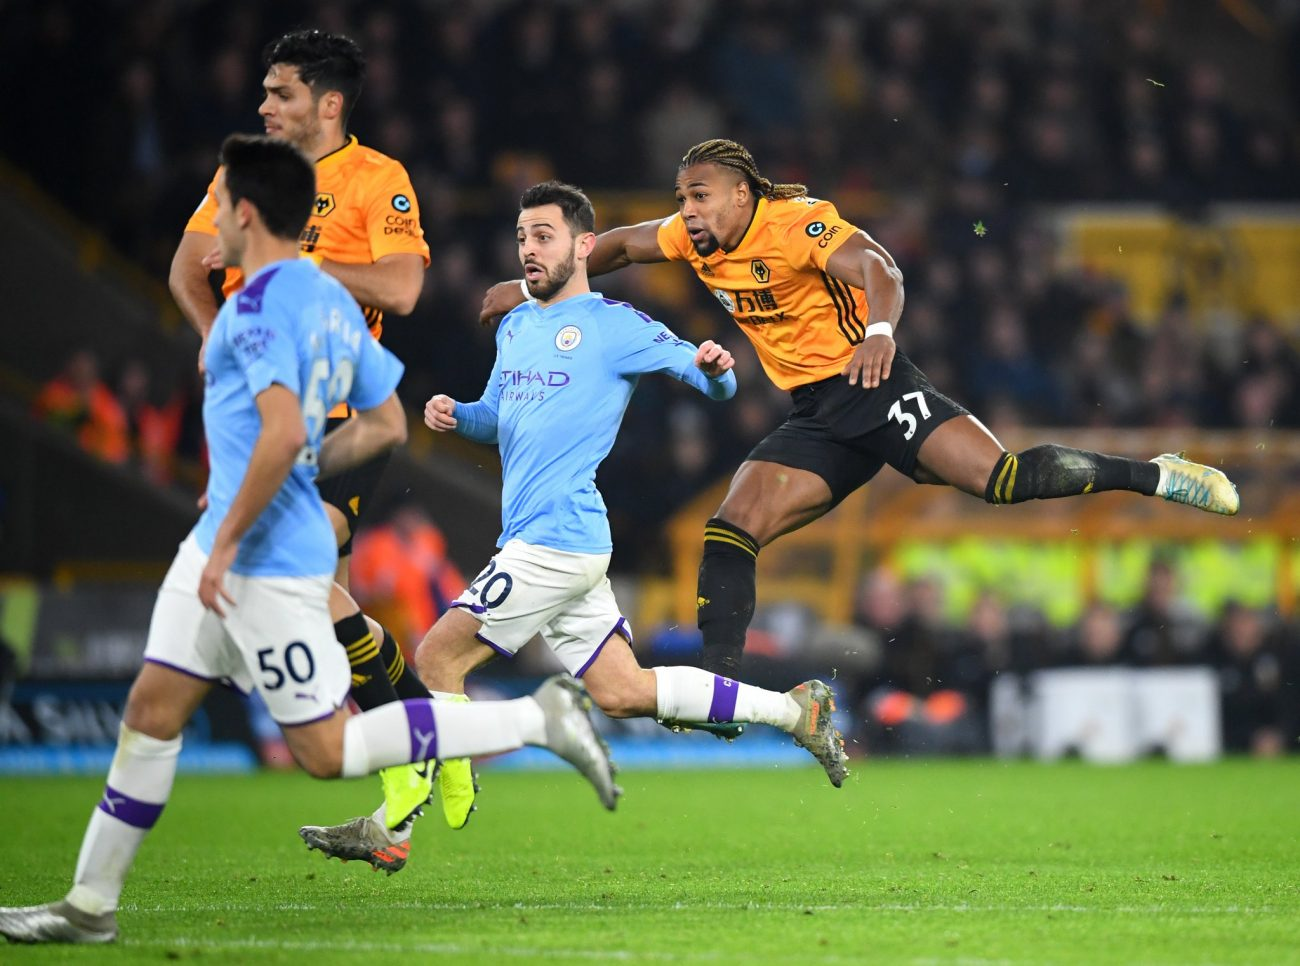 Wolves beat Man City to hand Liverpool the advantage before Anfield visit